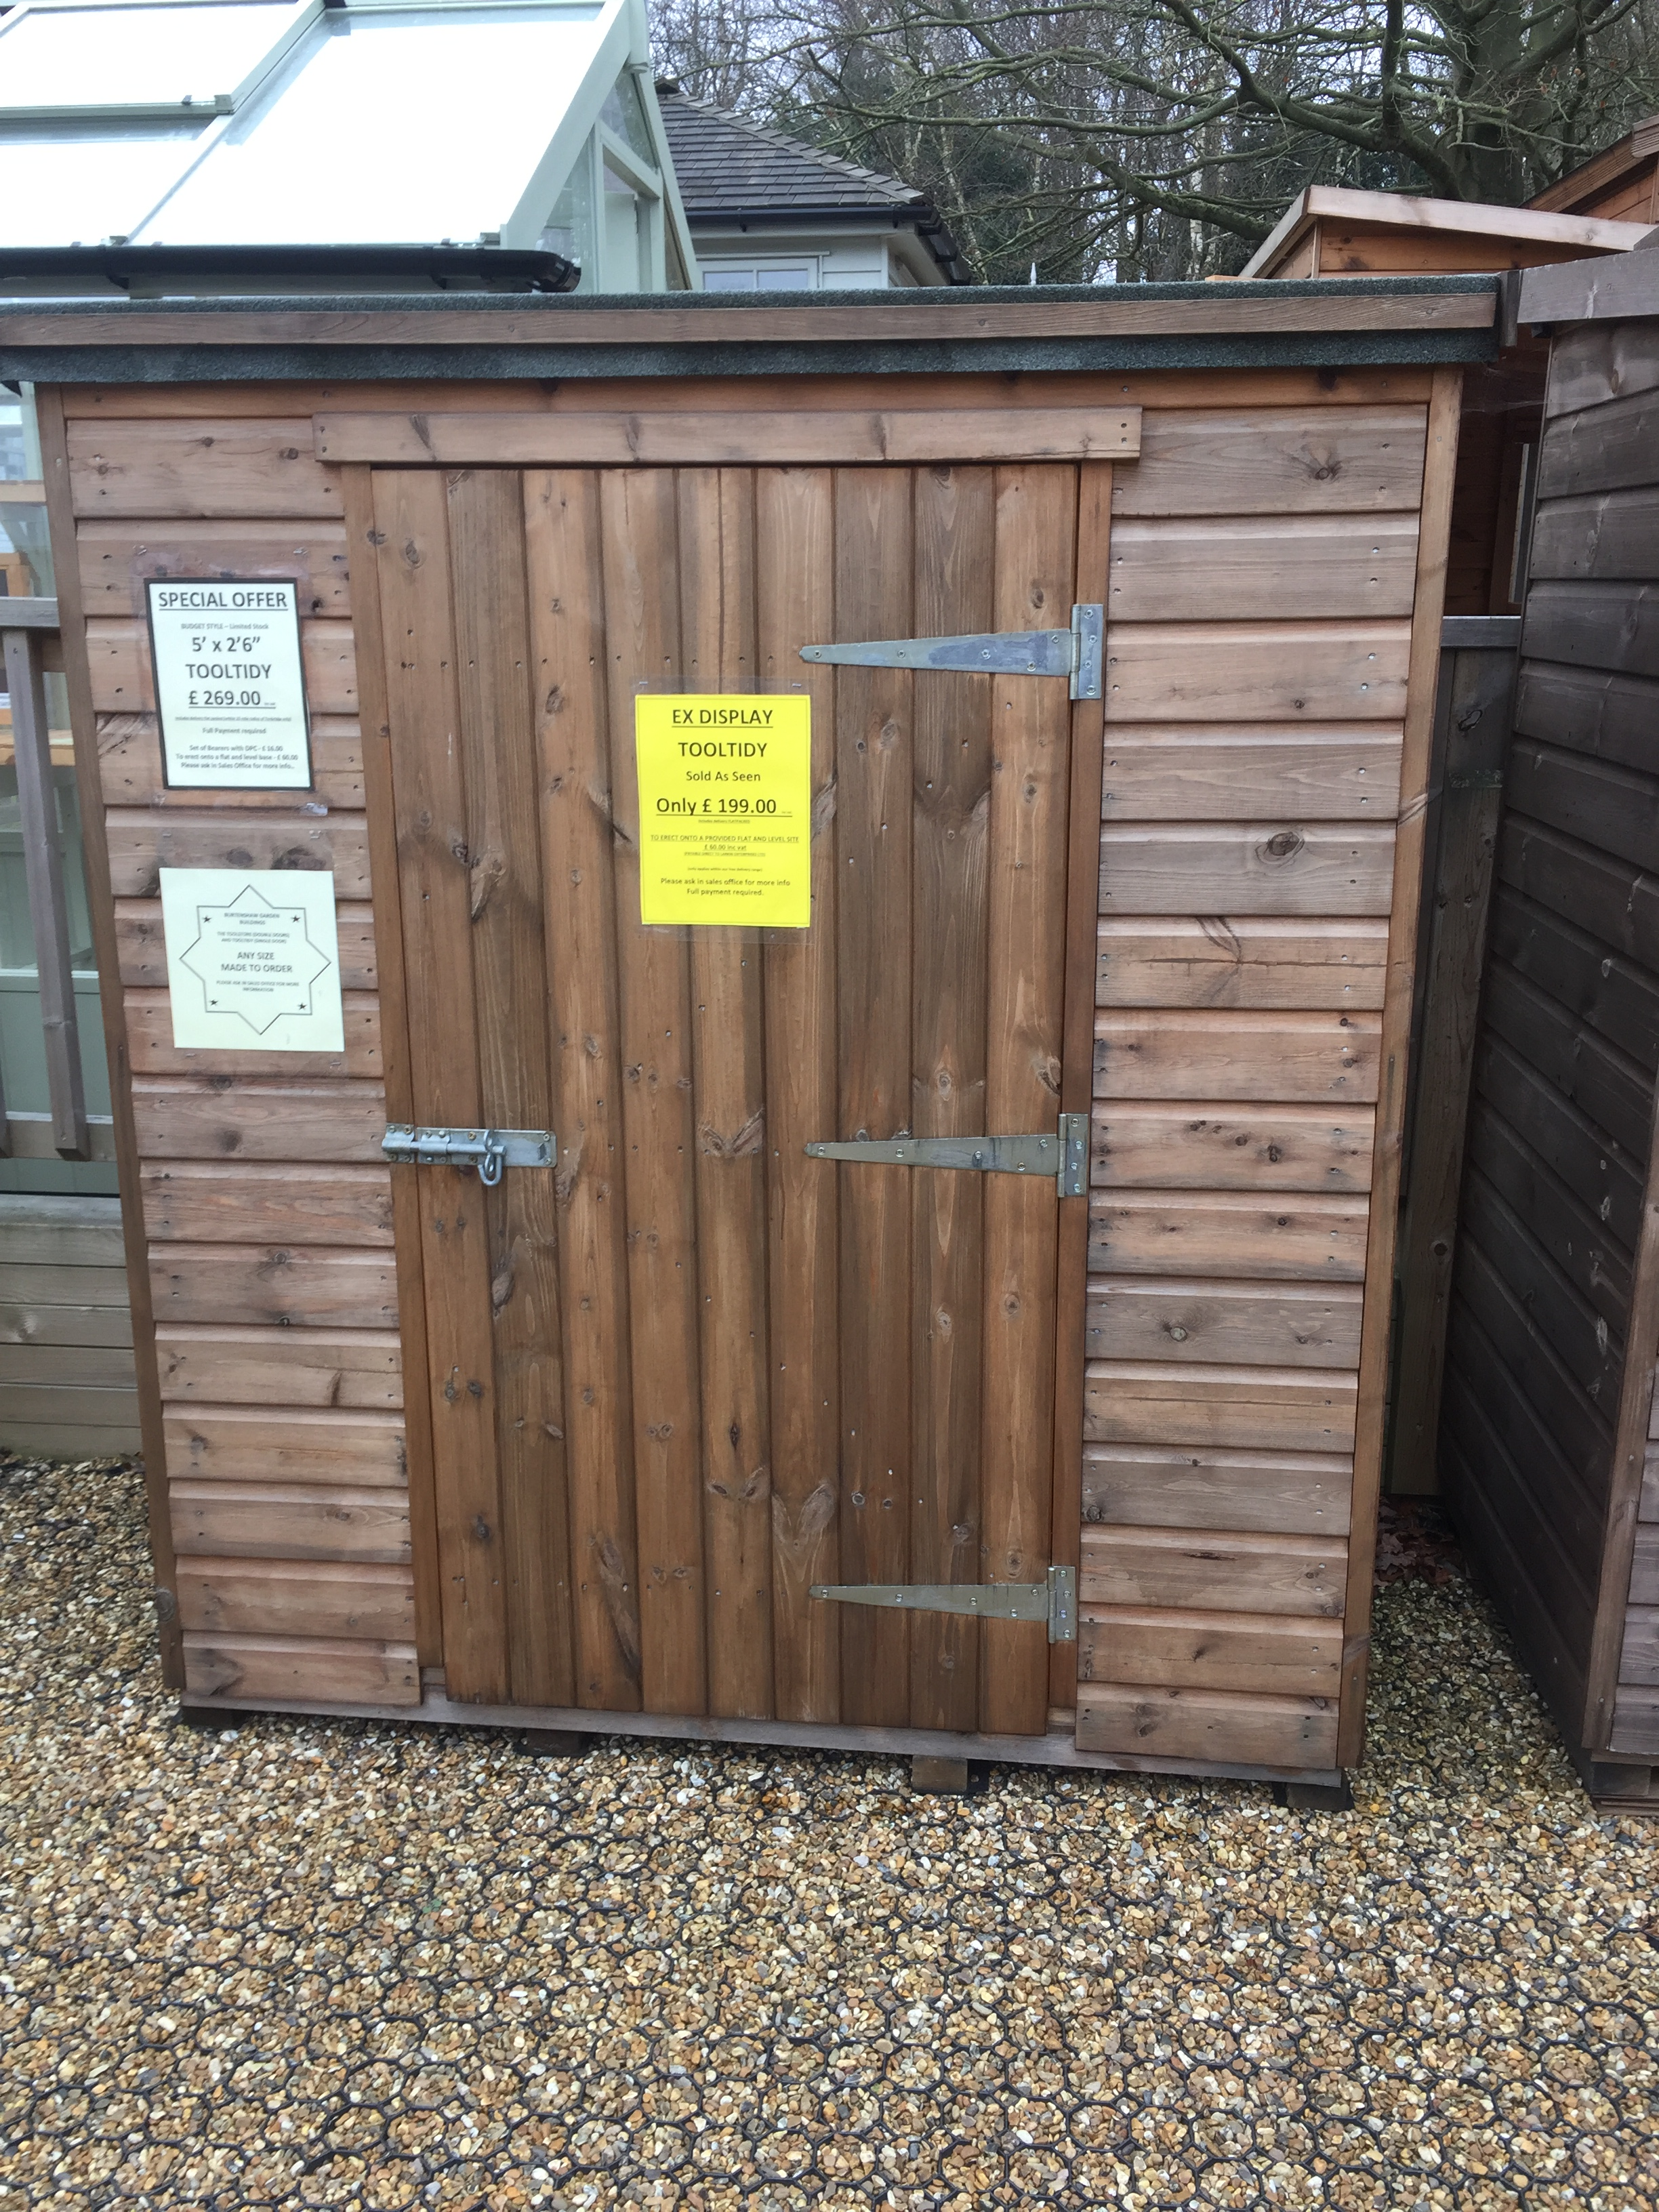 "<p id=""boldtitle"">Ex Display </p>5 x 2'6 Budget Tooltidy - £ 199.00 inc vat.<br/>At our display site within Notcutts Garden centre Pembury"